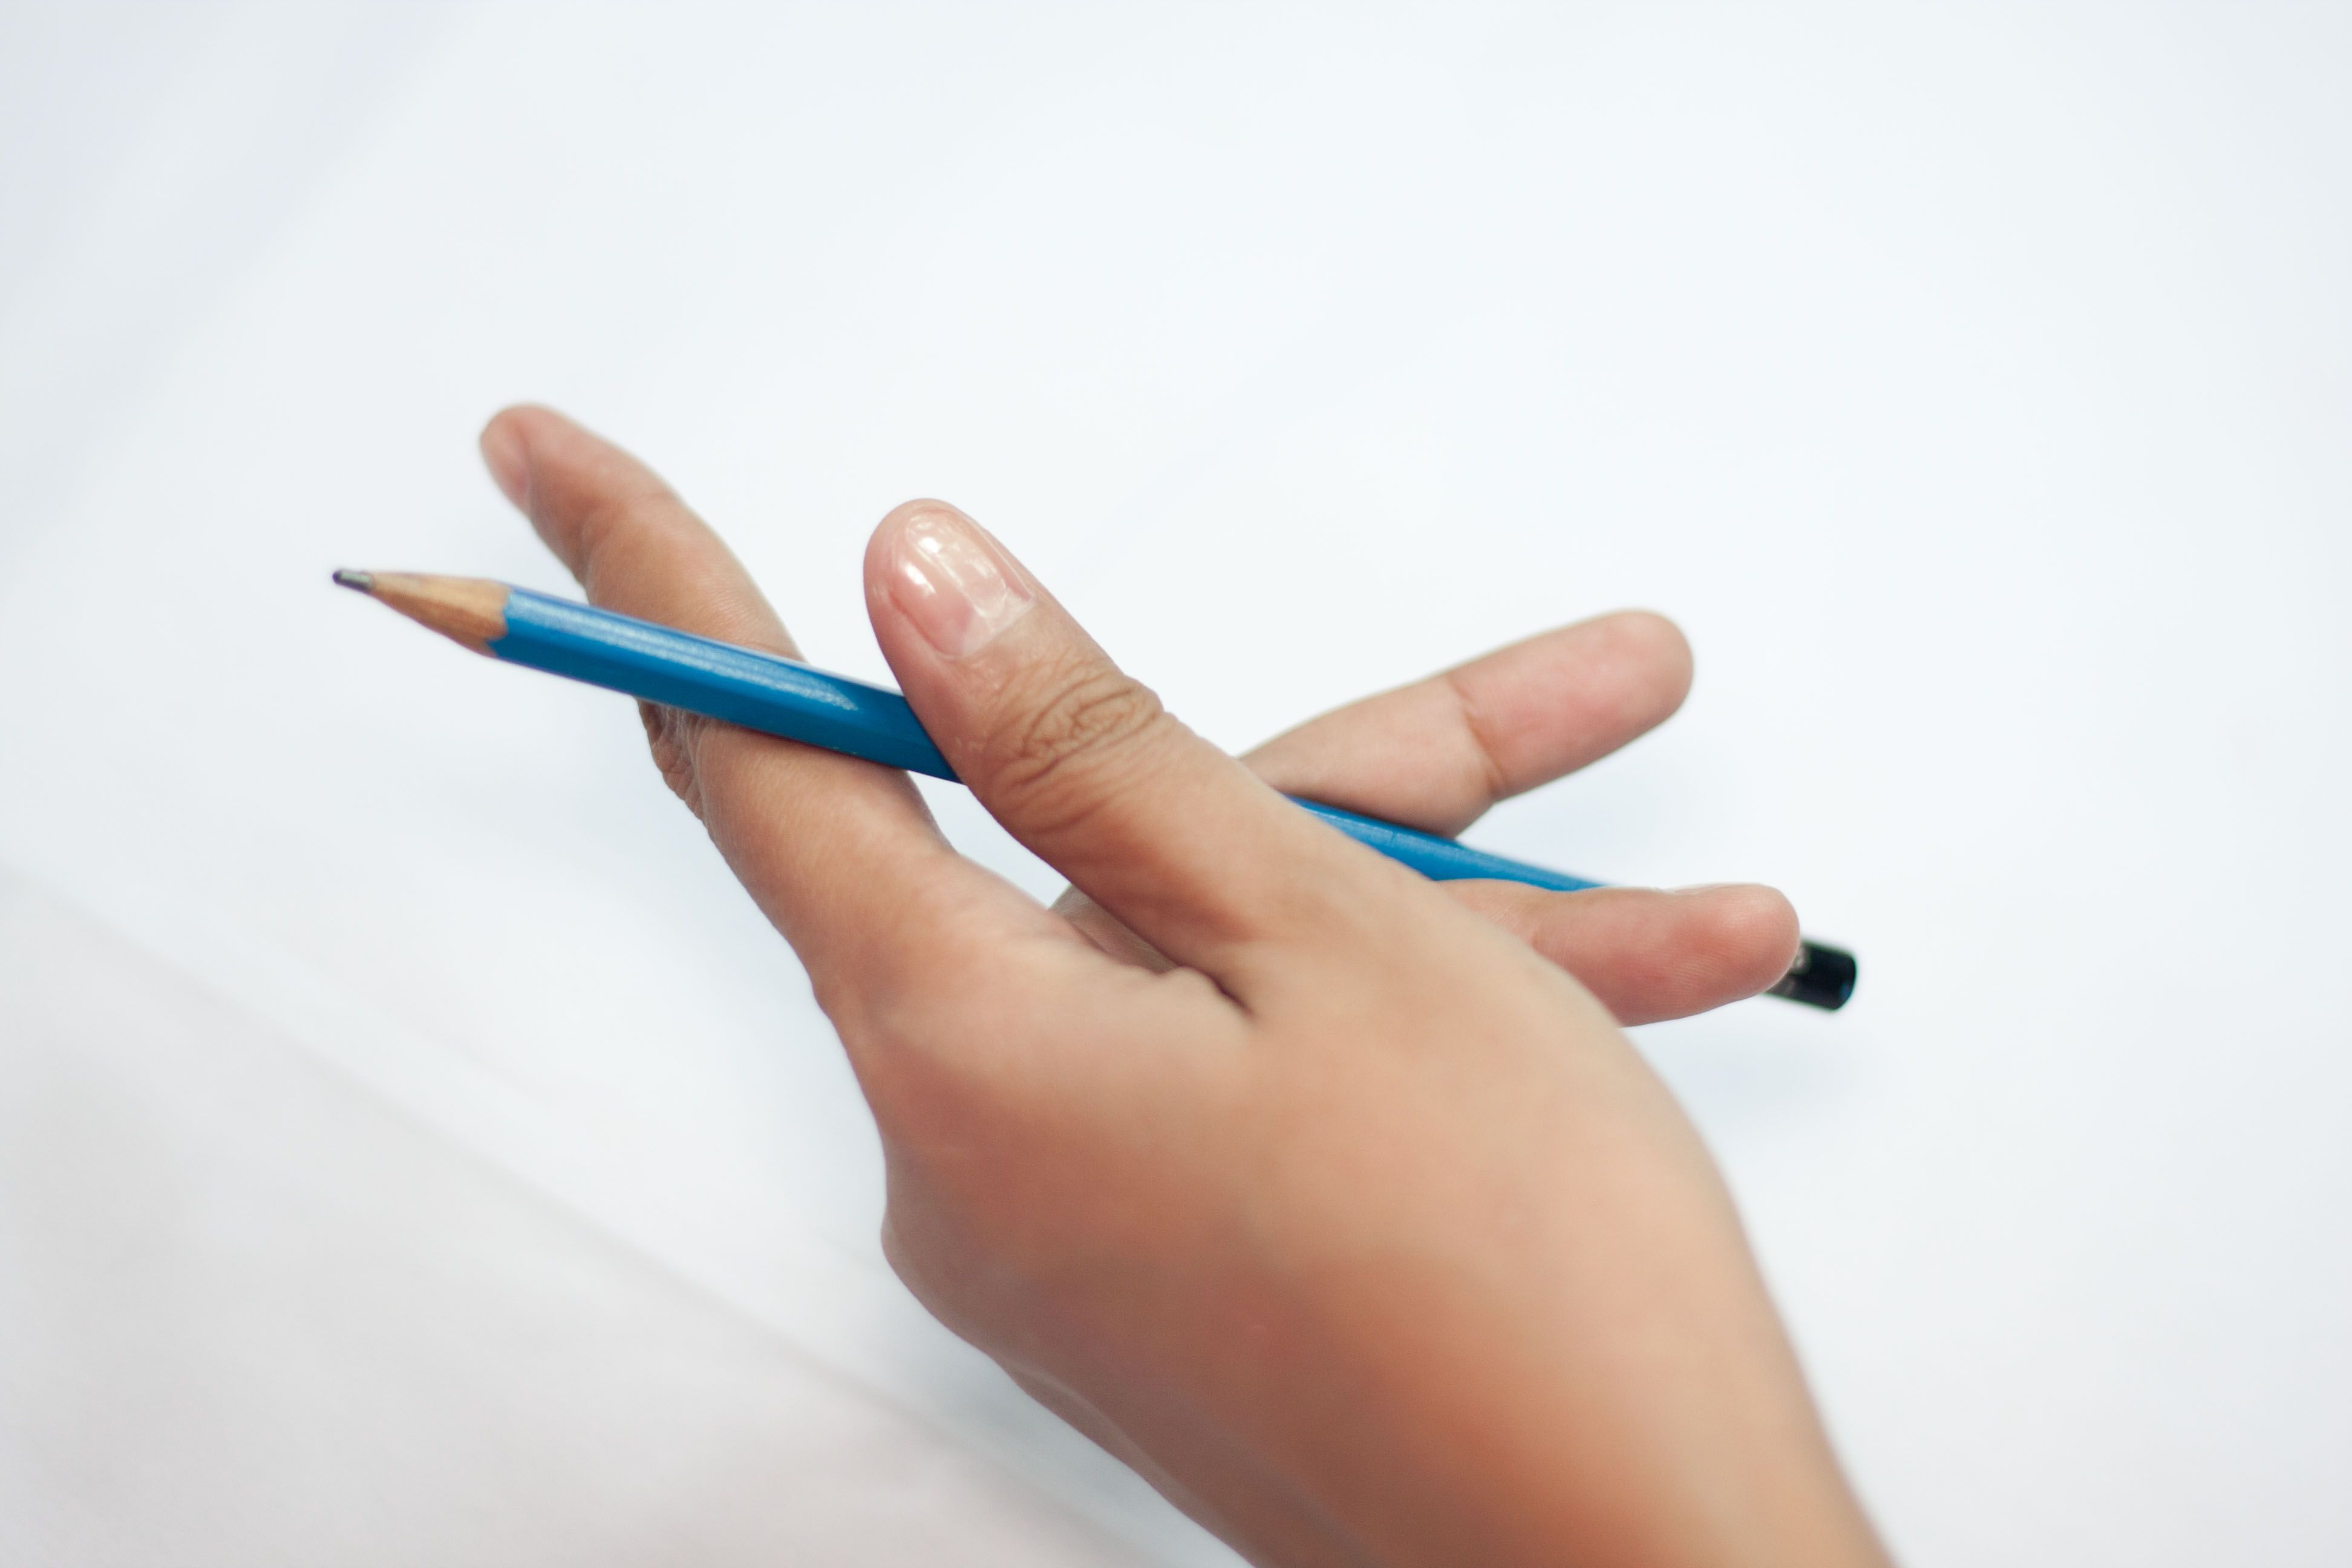 Spin A Pencil Around Your Middle Finger Everything Is Awesome